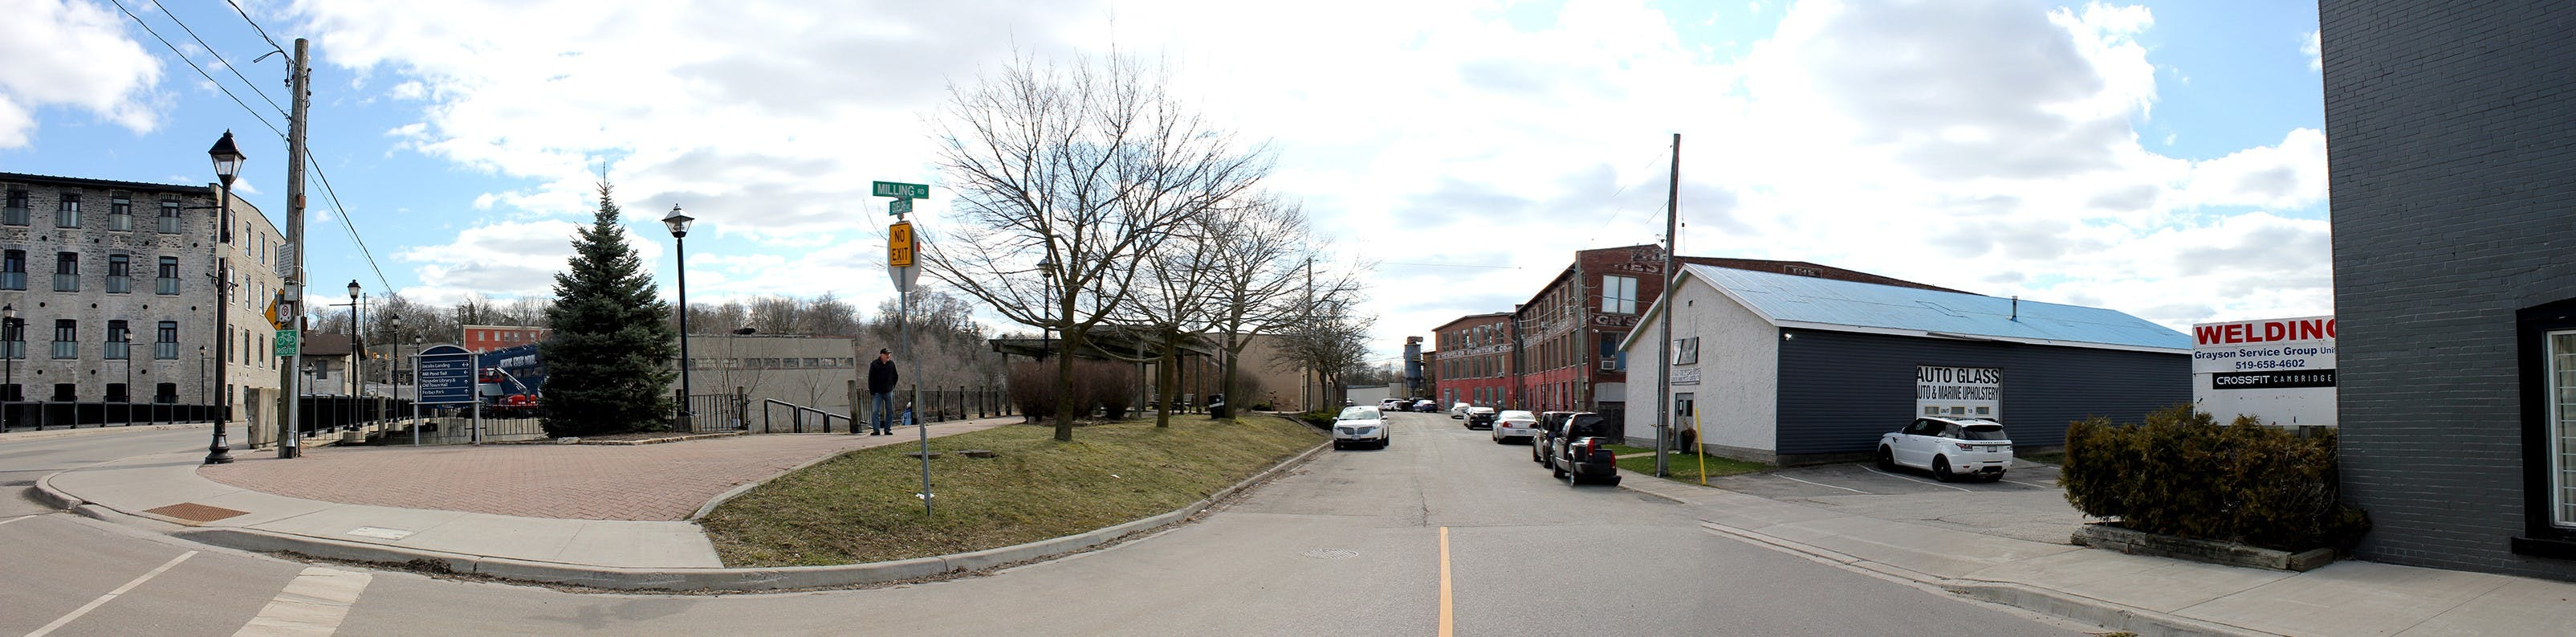 View looking southwest down Milling Road at Guelph Ave